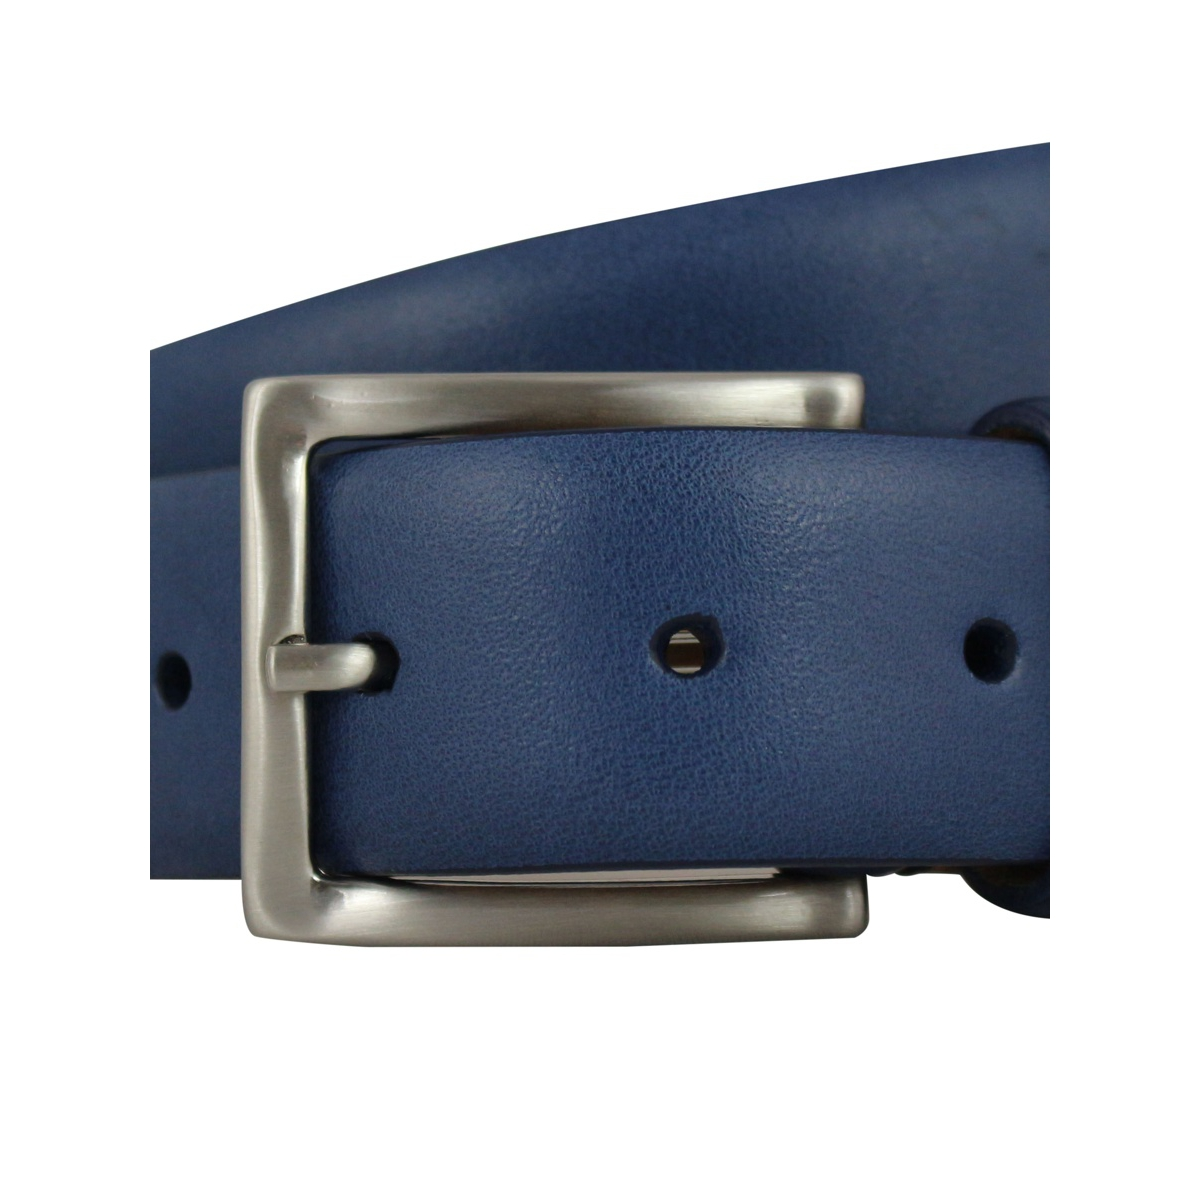 Leather belt H 35 Ink SERGIO GAVAZZENI